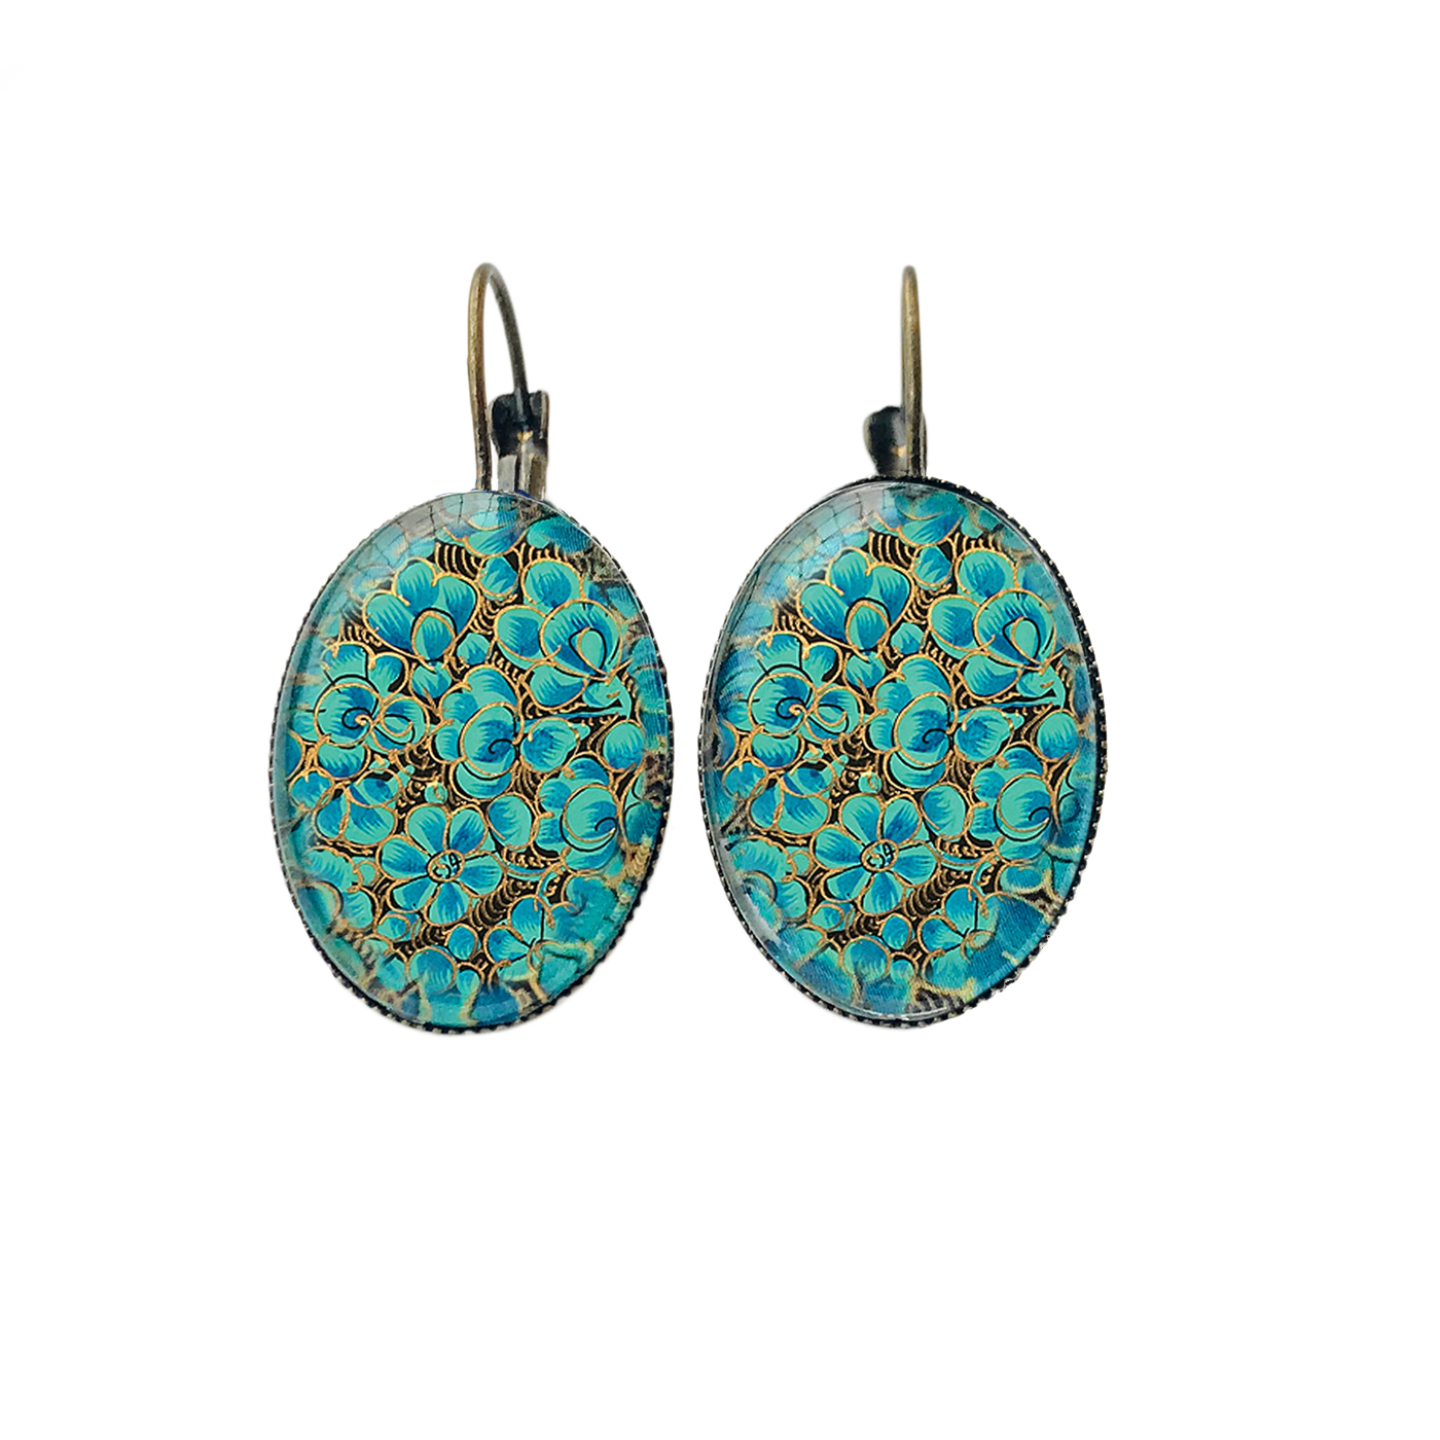 Oval Lever back earrings - Naqashi, Kashmir